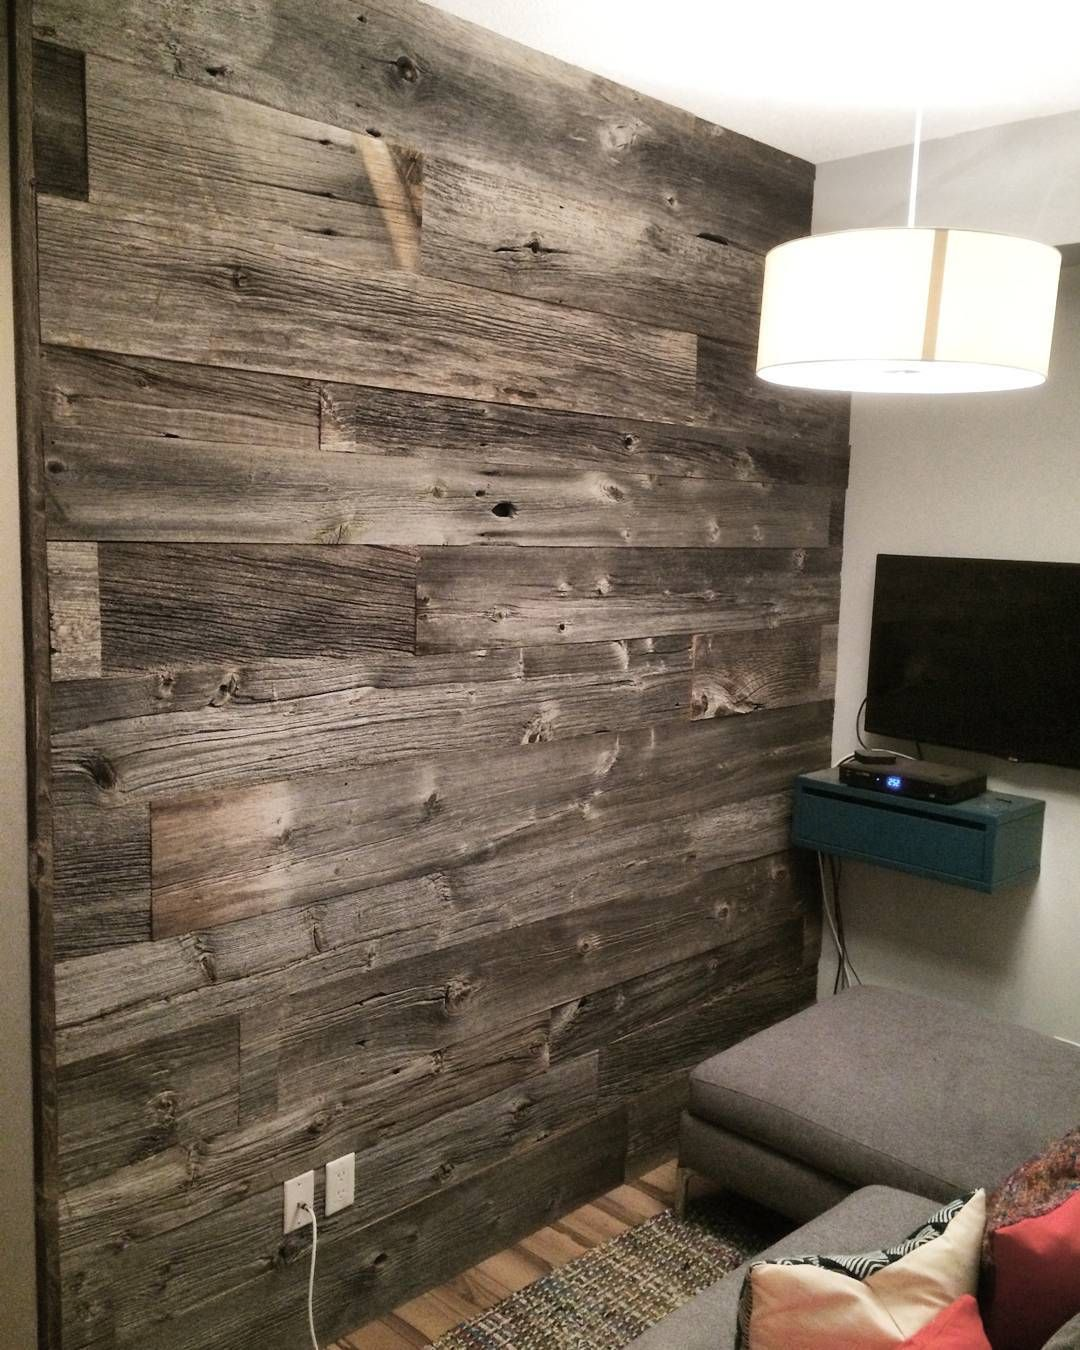 Reclaimed Grey Barn Board Feature Wall By Barnboard Authentic Ontario Wood Was Used To Add Some Charm And Texture This E